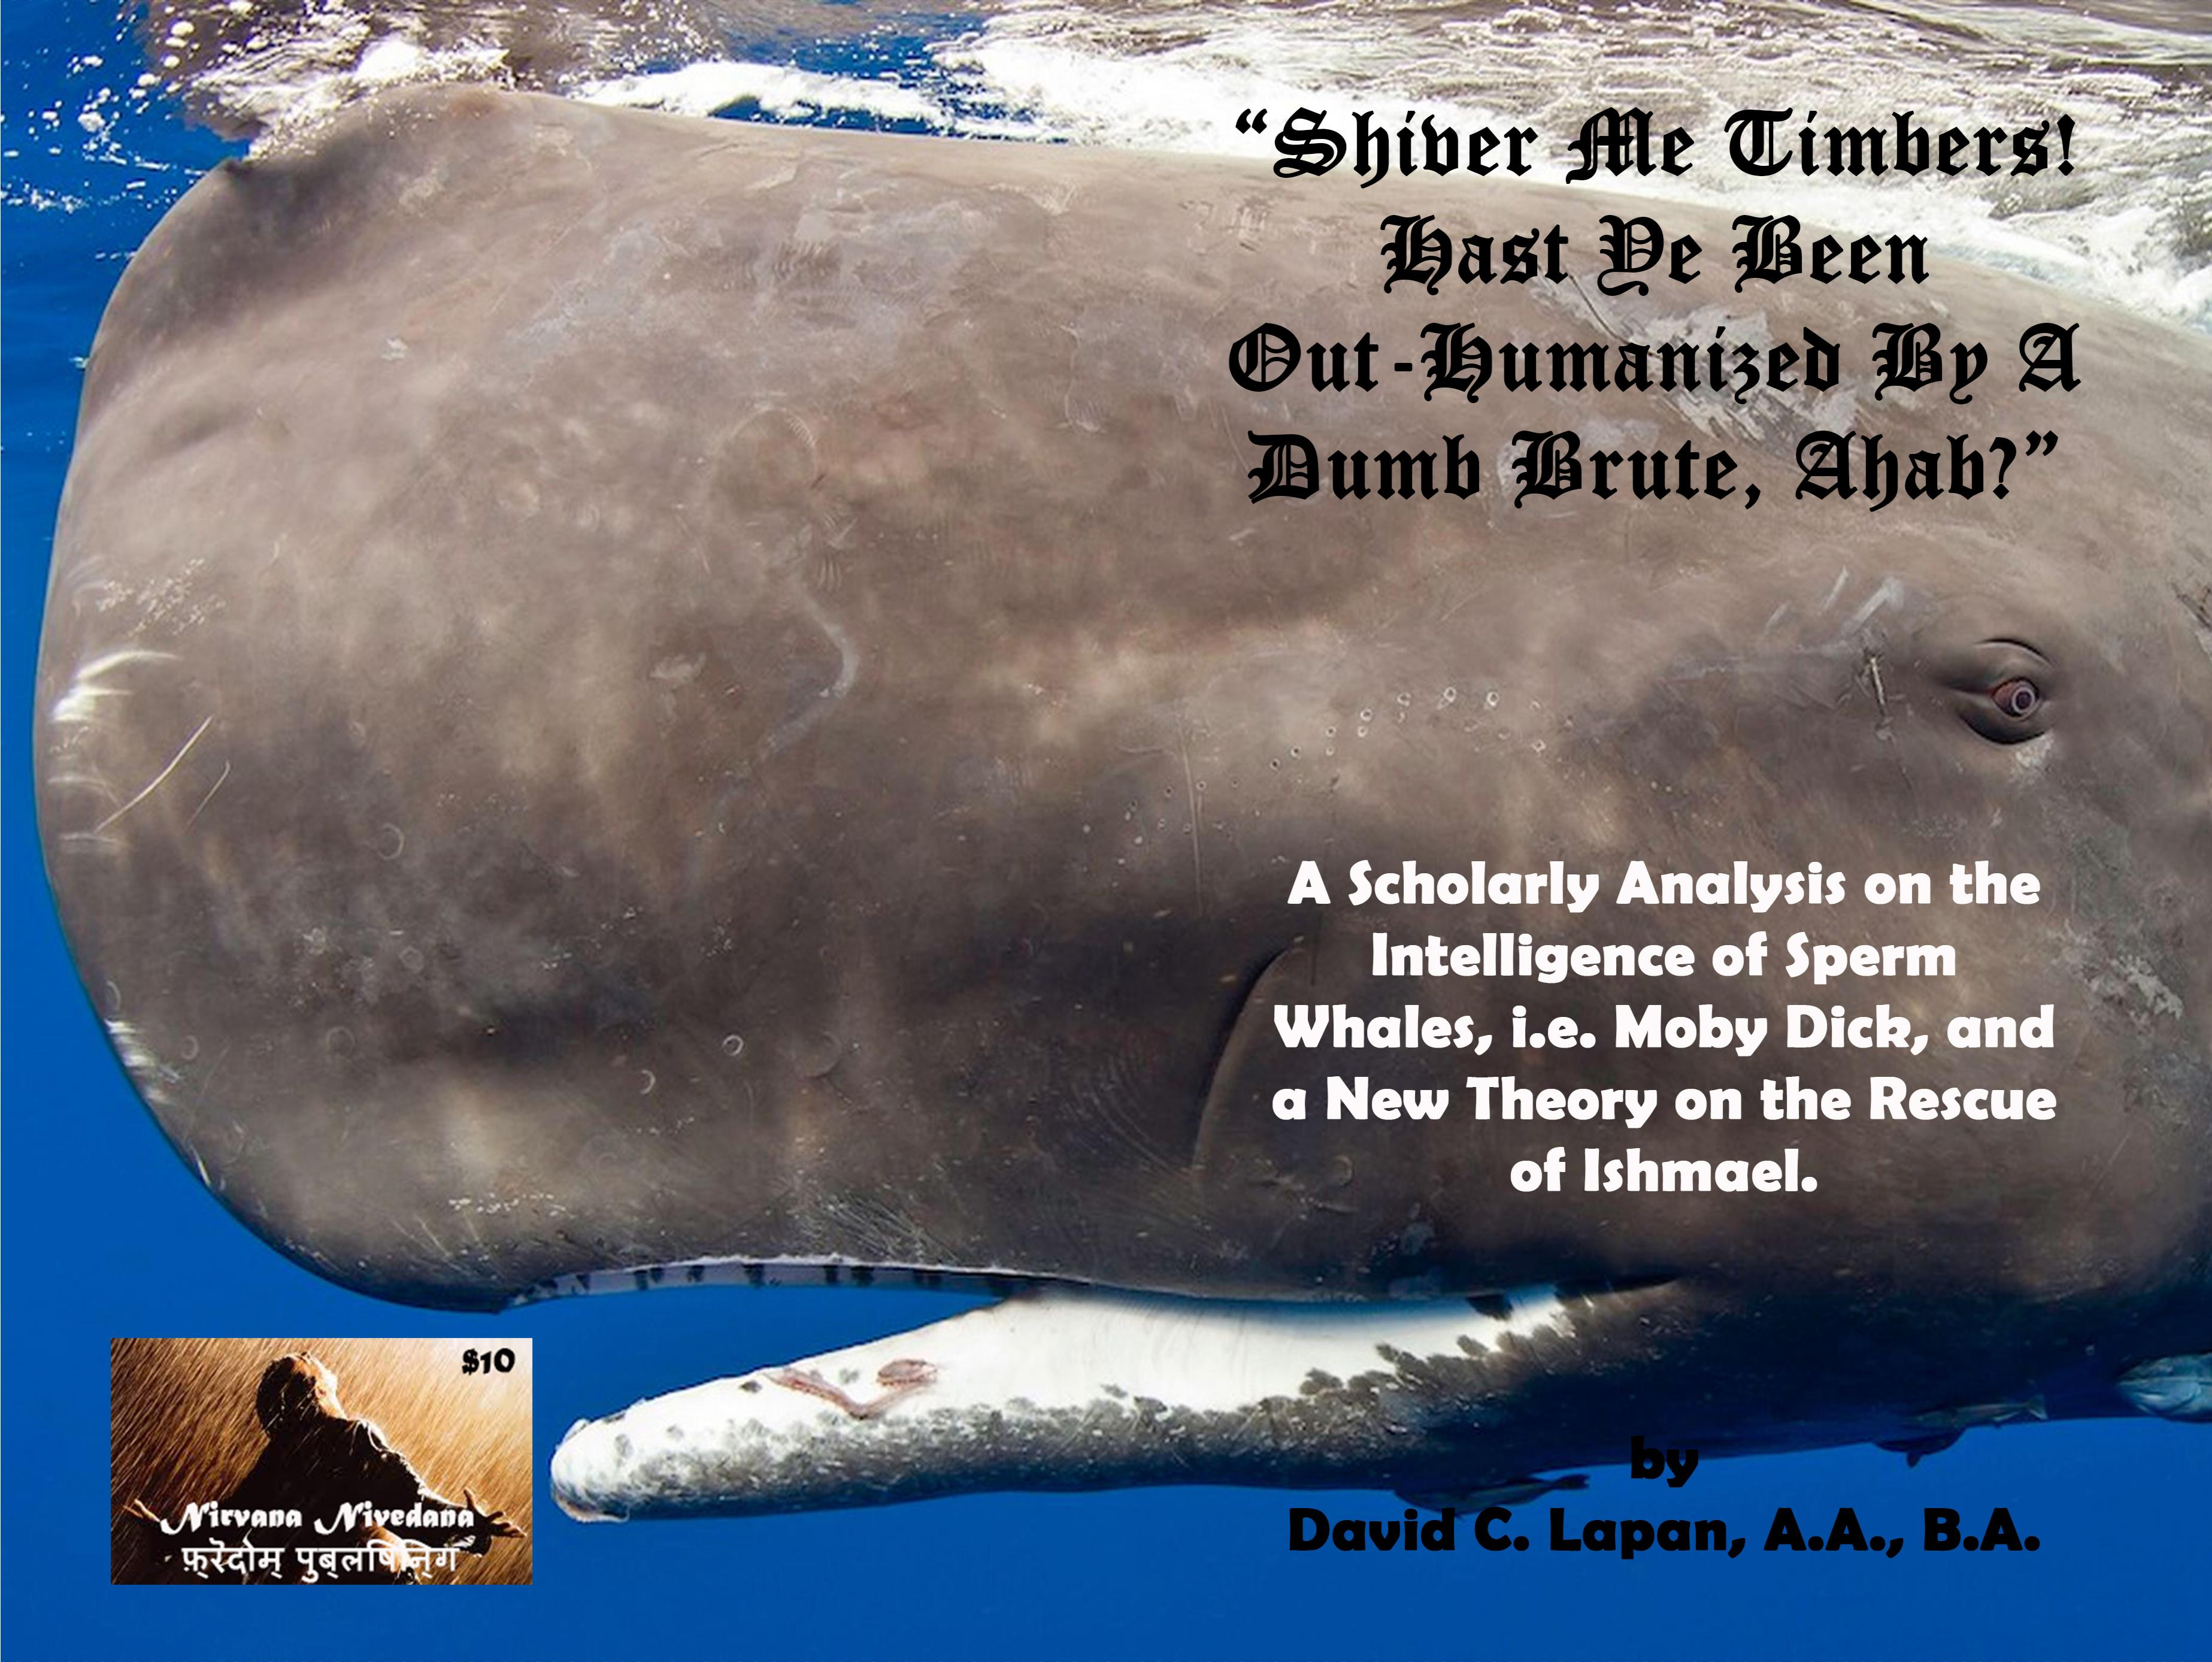 Shiver Me Timbers! Hast Ye Been Out-Humanized By A Dumb Brute, Ahab? cover image